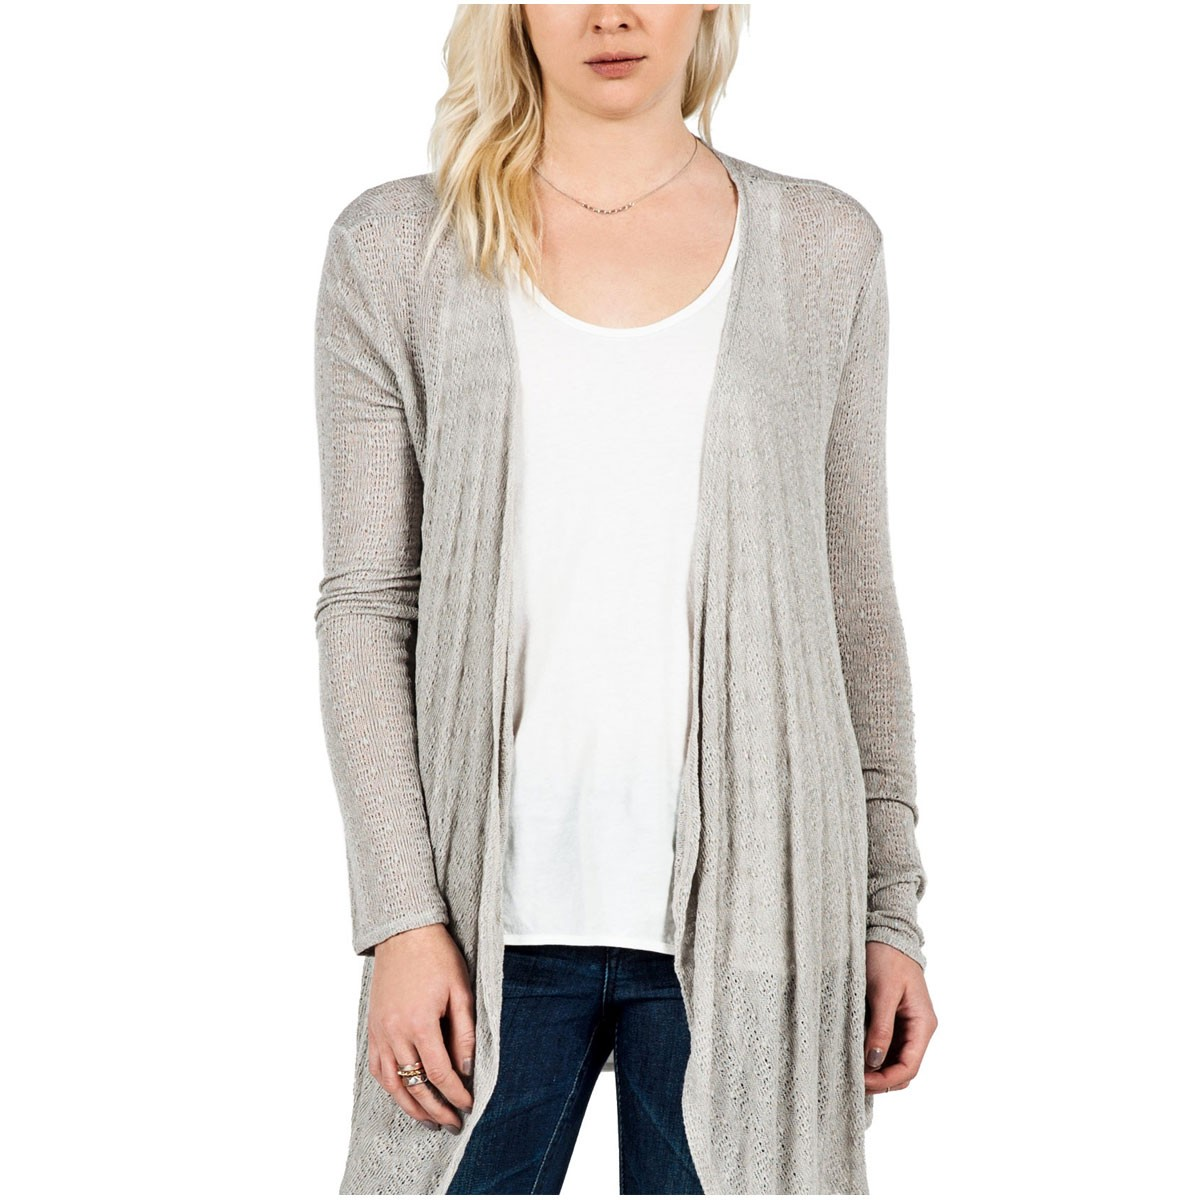 Free To Go Womens Wrap Sweater - Moonbeam